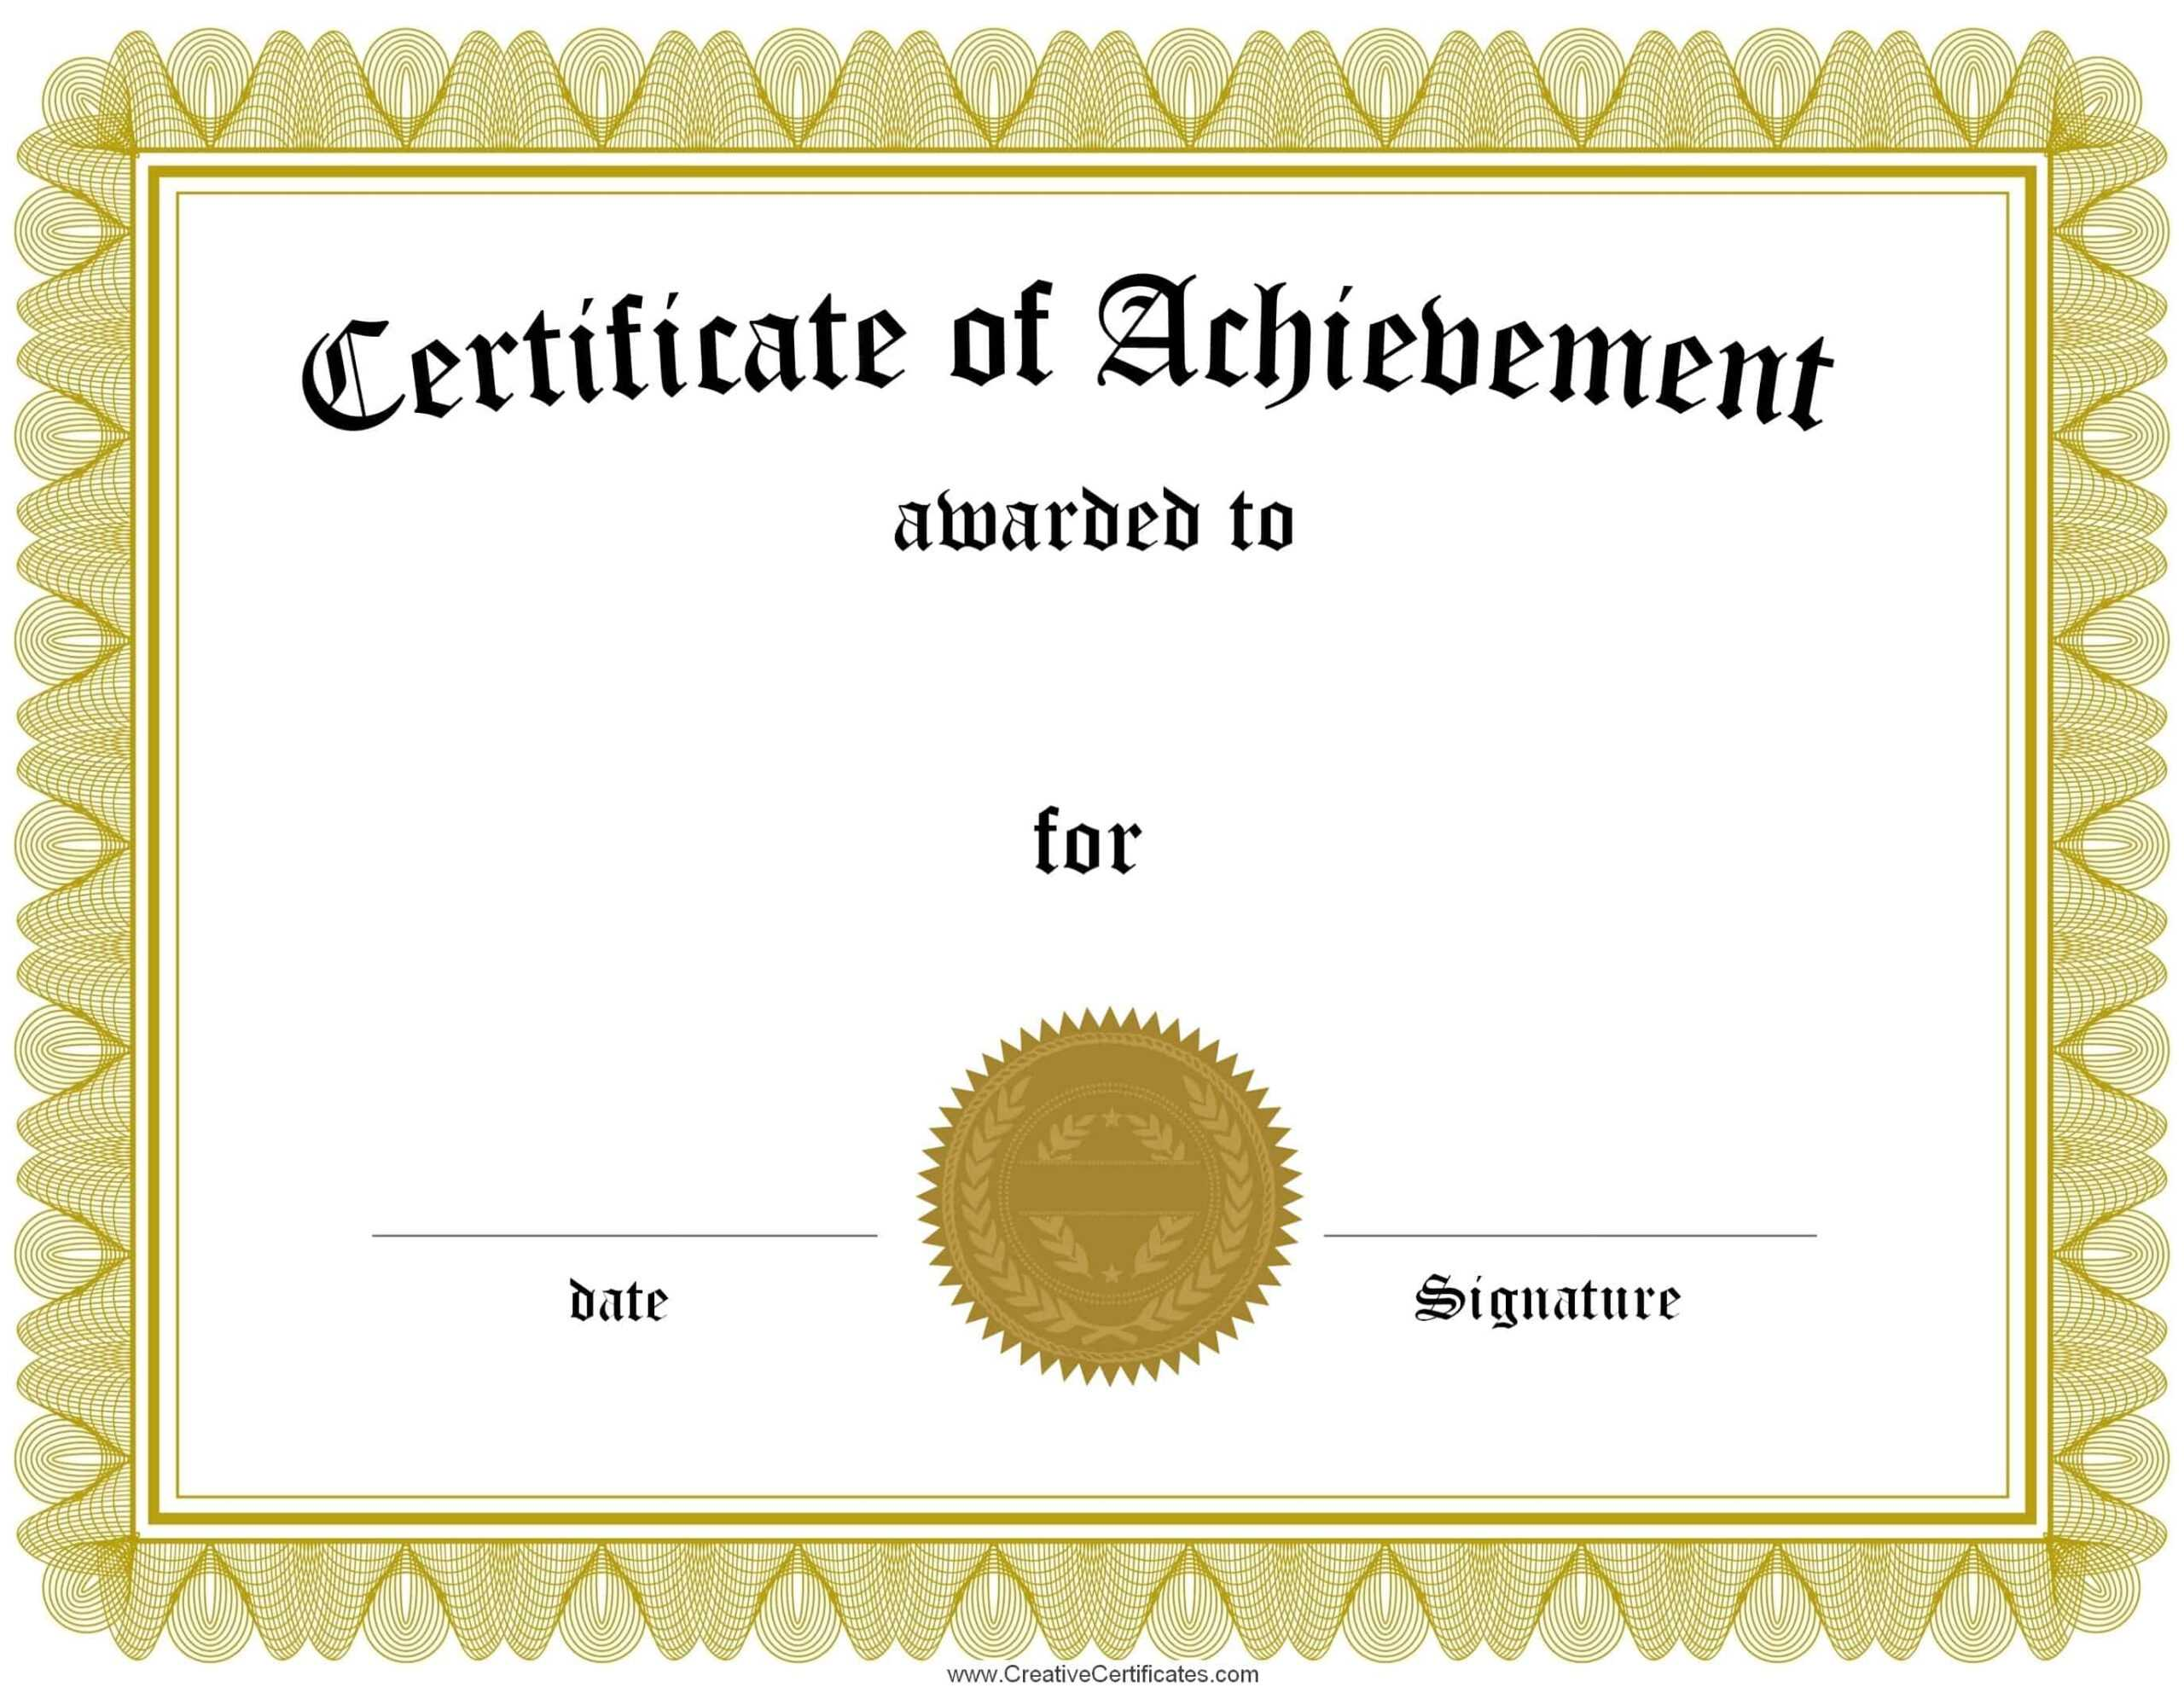 Free Printable Certificate Of Achievement Online Template Regarding Free Printable Certificate Of Achievement Template